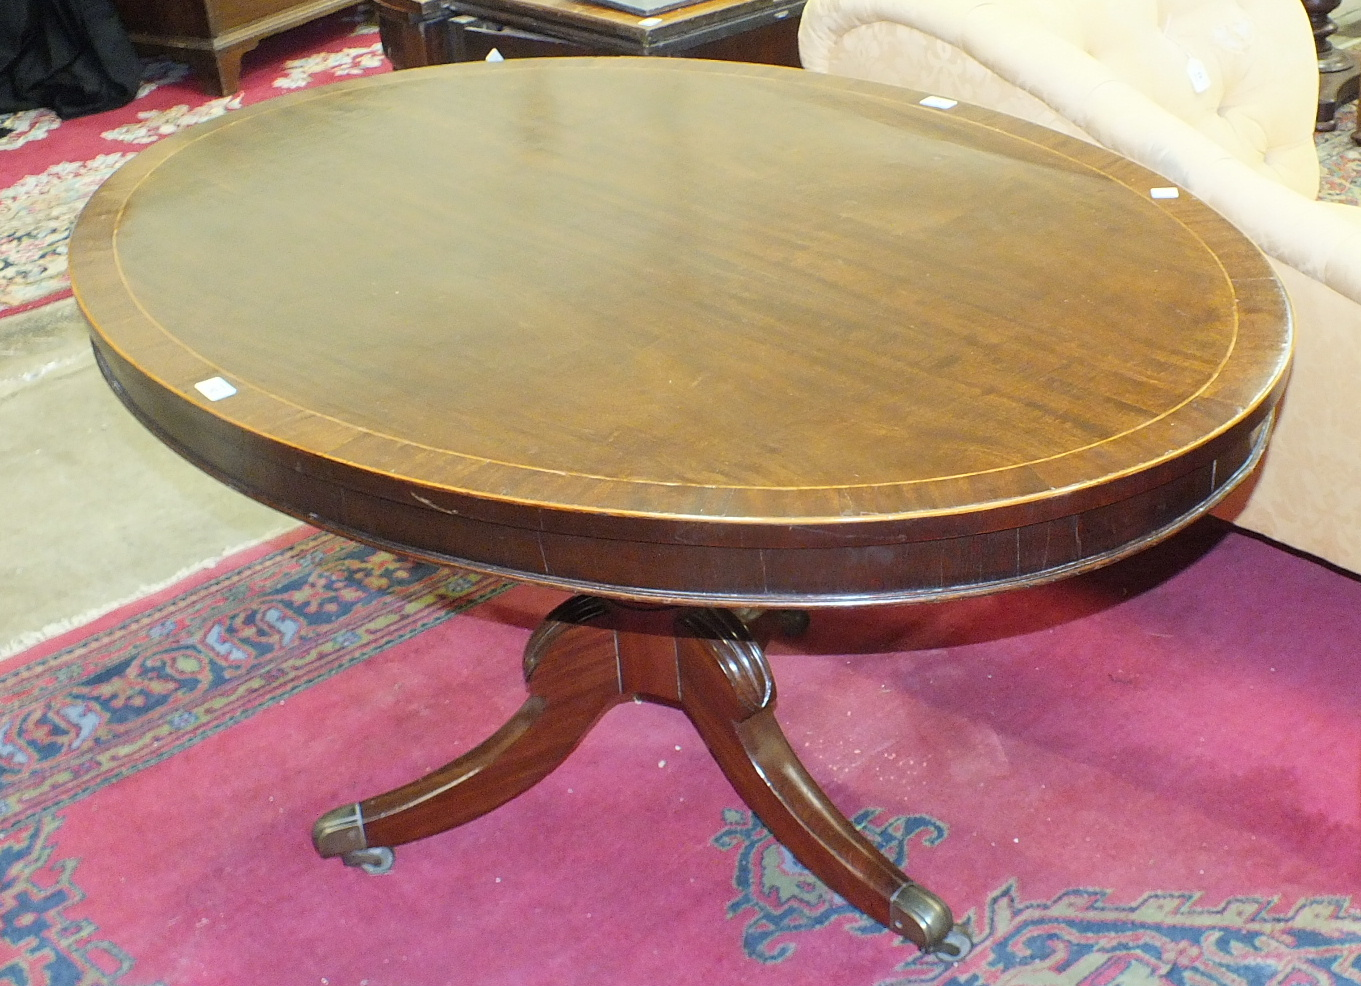 A 19th century mahogany oval tilt-top breakfast table on turned column and hipped sabre legs with